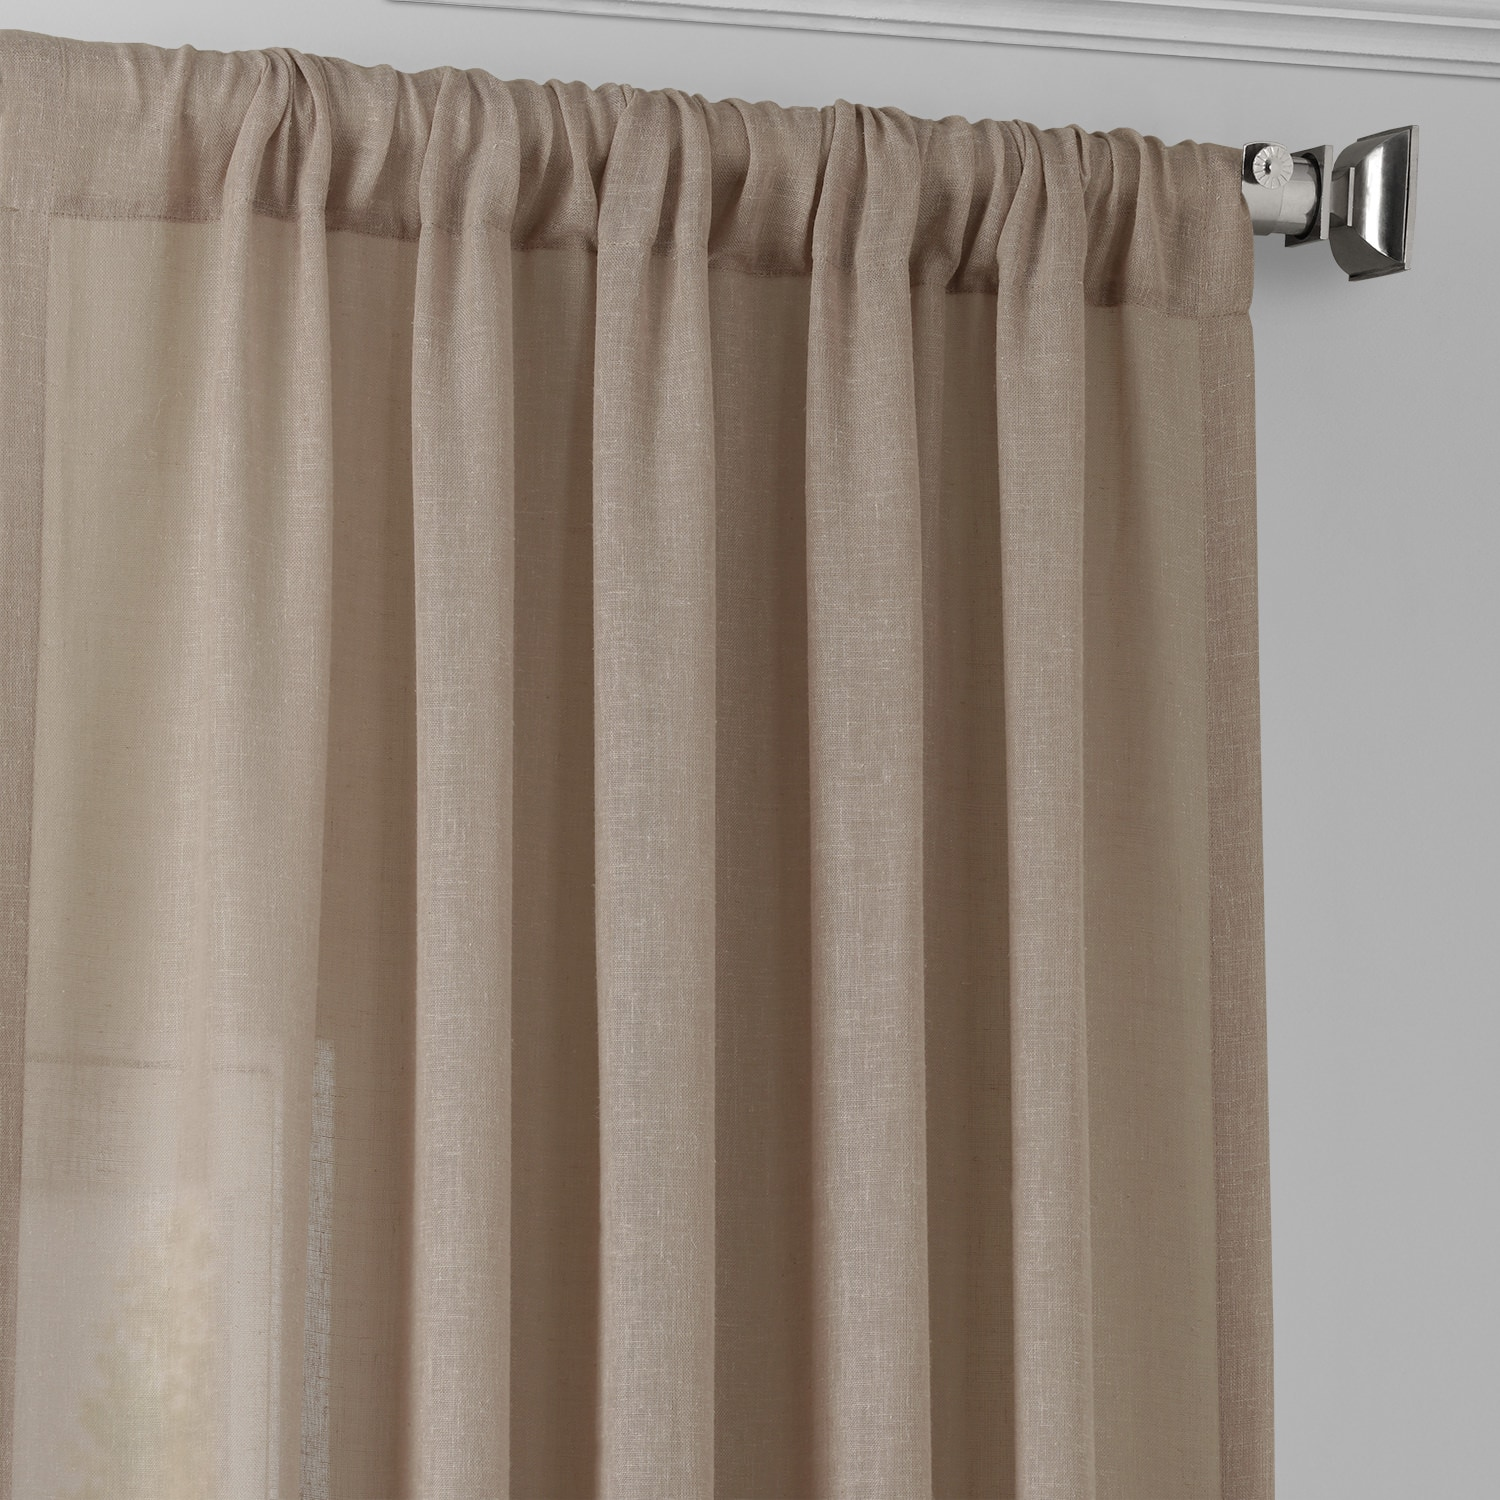 Soft Taupe Faux Linen Sheer Curtain